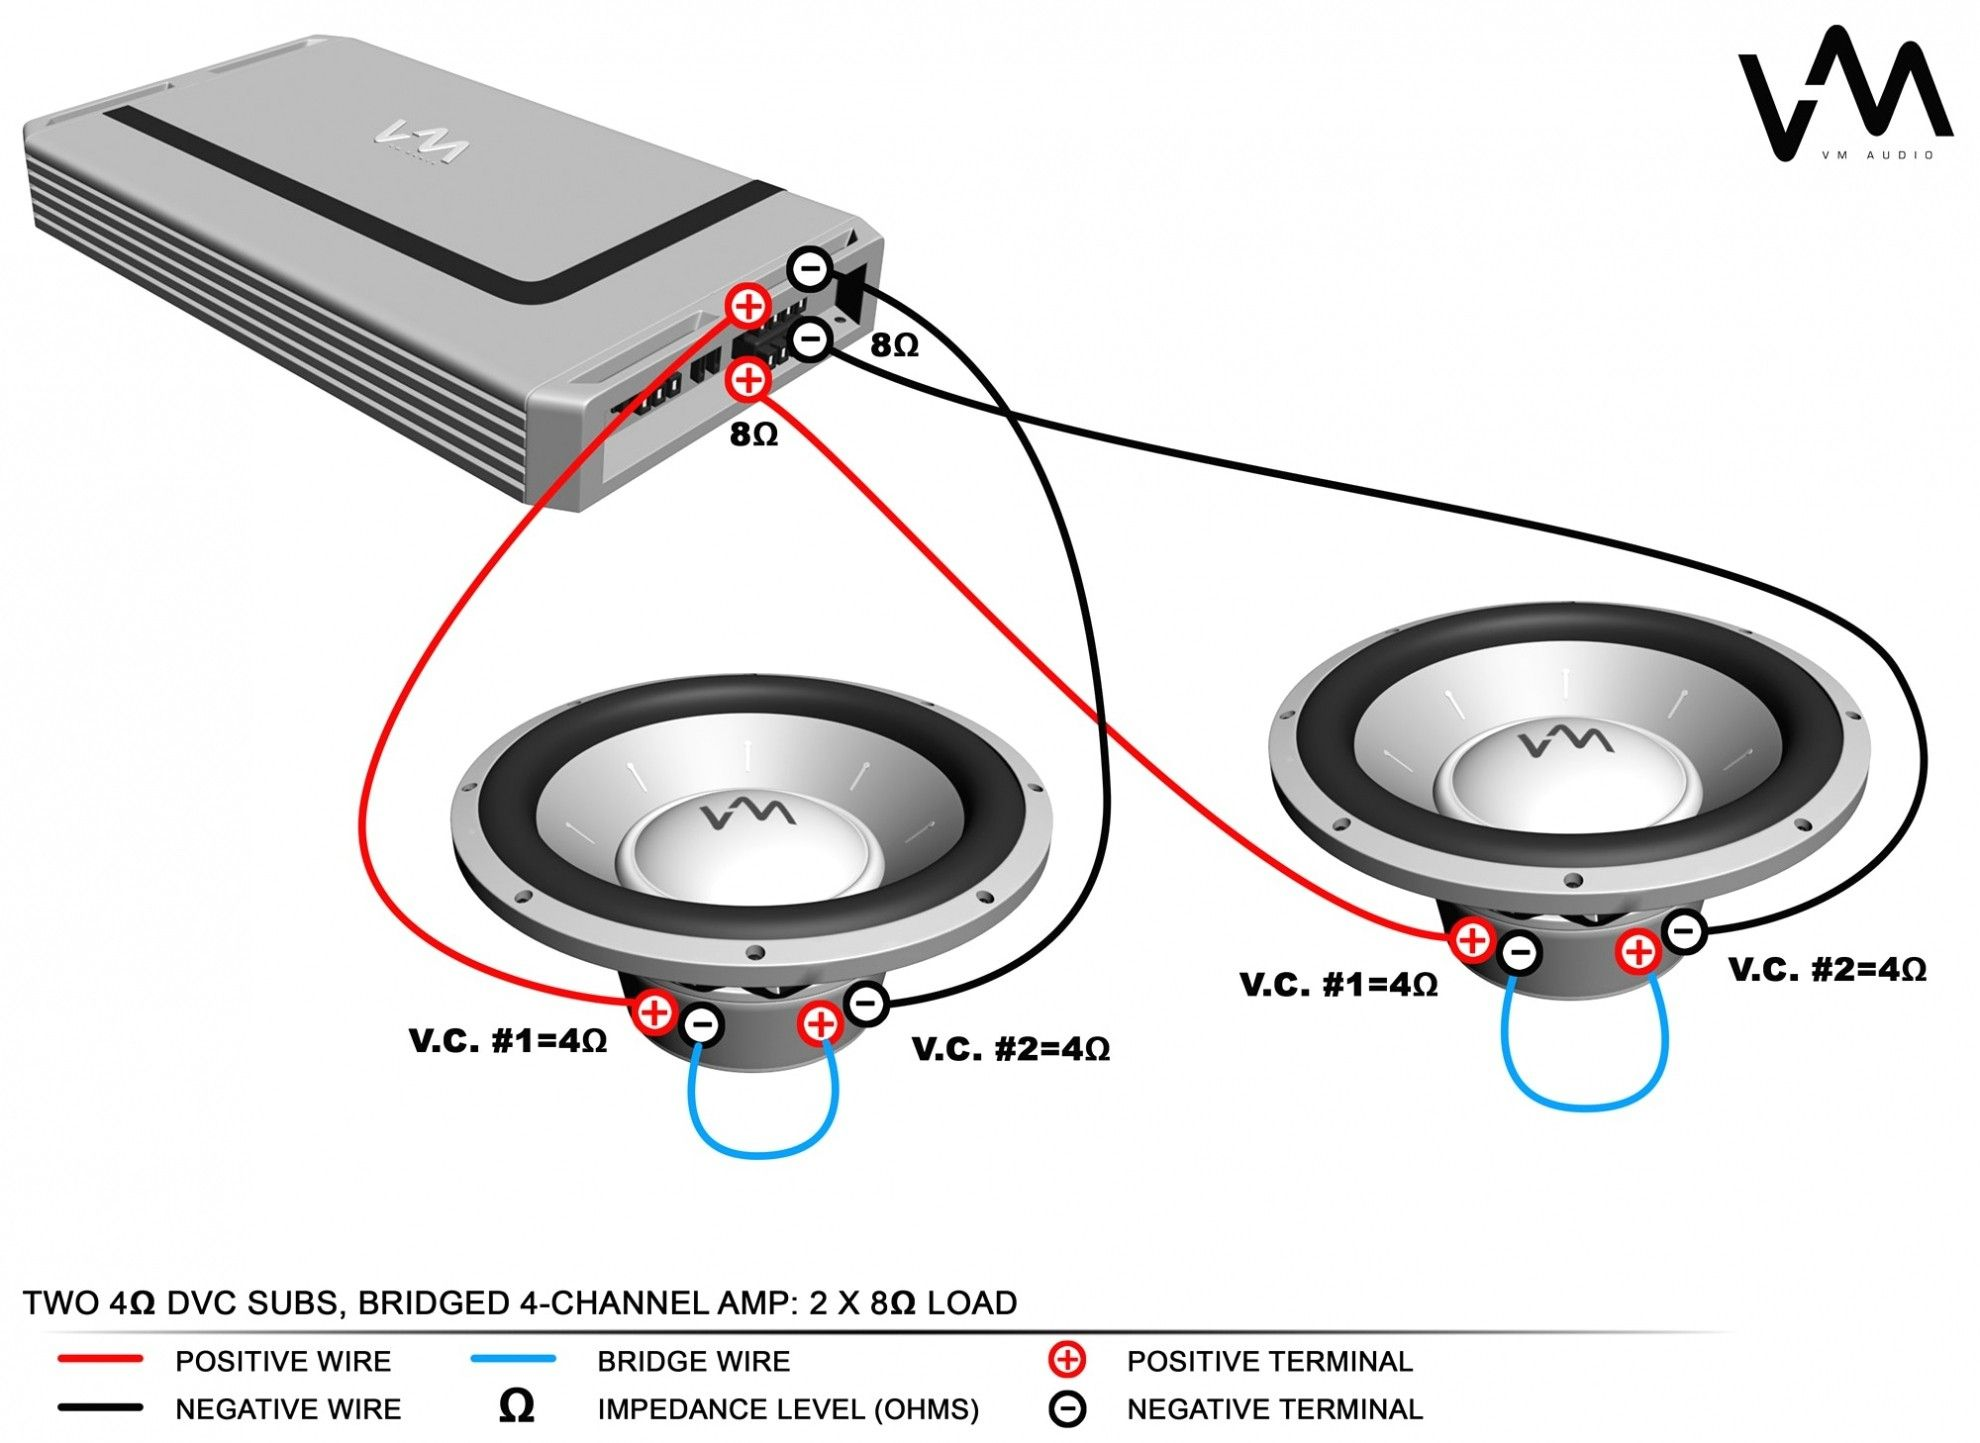 DIAGRAM] Hx2 Dual 2 Ohm Subwoofer Wiring Diagram FULL Version HD Quality Wiring  Diagram - DIAGRAMMU.MULFARIMBIANCHINO.IT | Hx2 Dual 2 Ohm Subwoofer Wiring Diagram |  | mulfarimbianchino.it